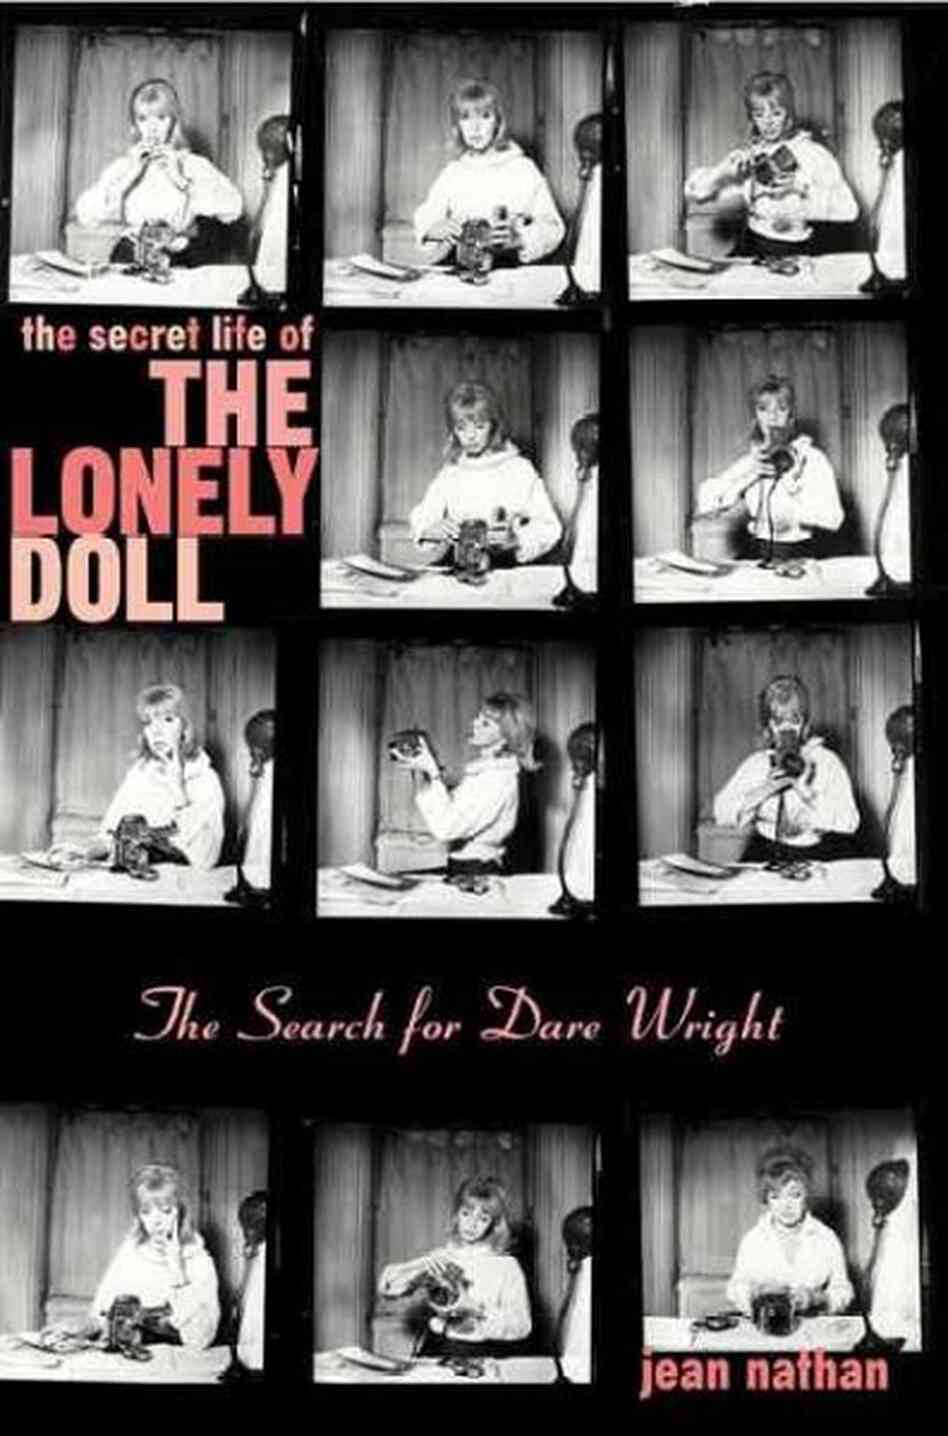 The Secret Life of the Lonely Doll